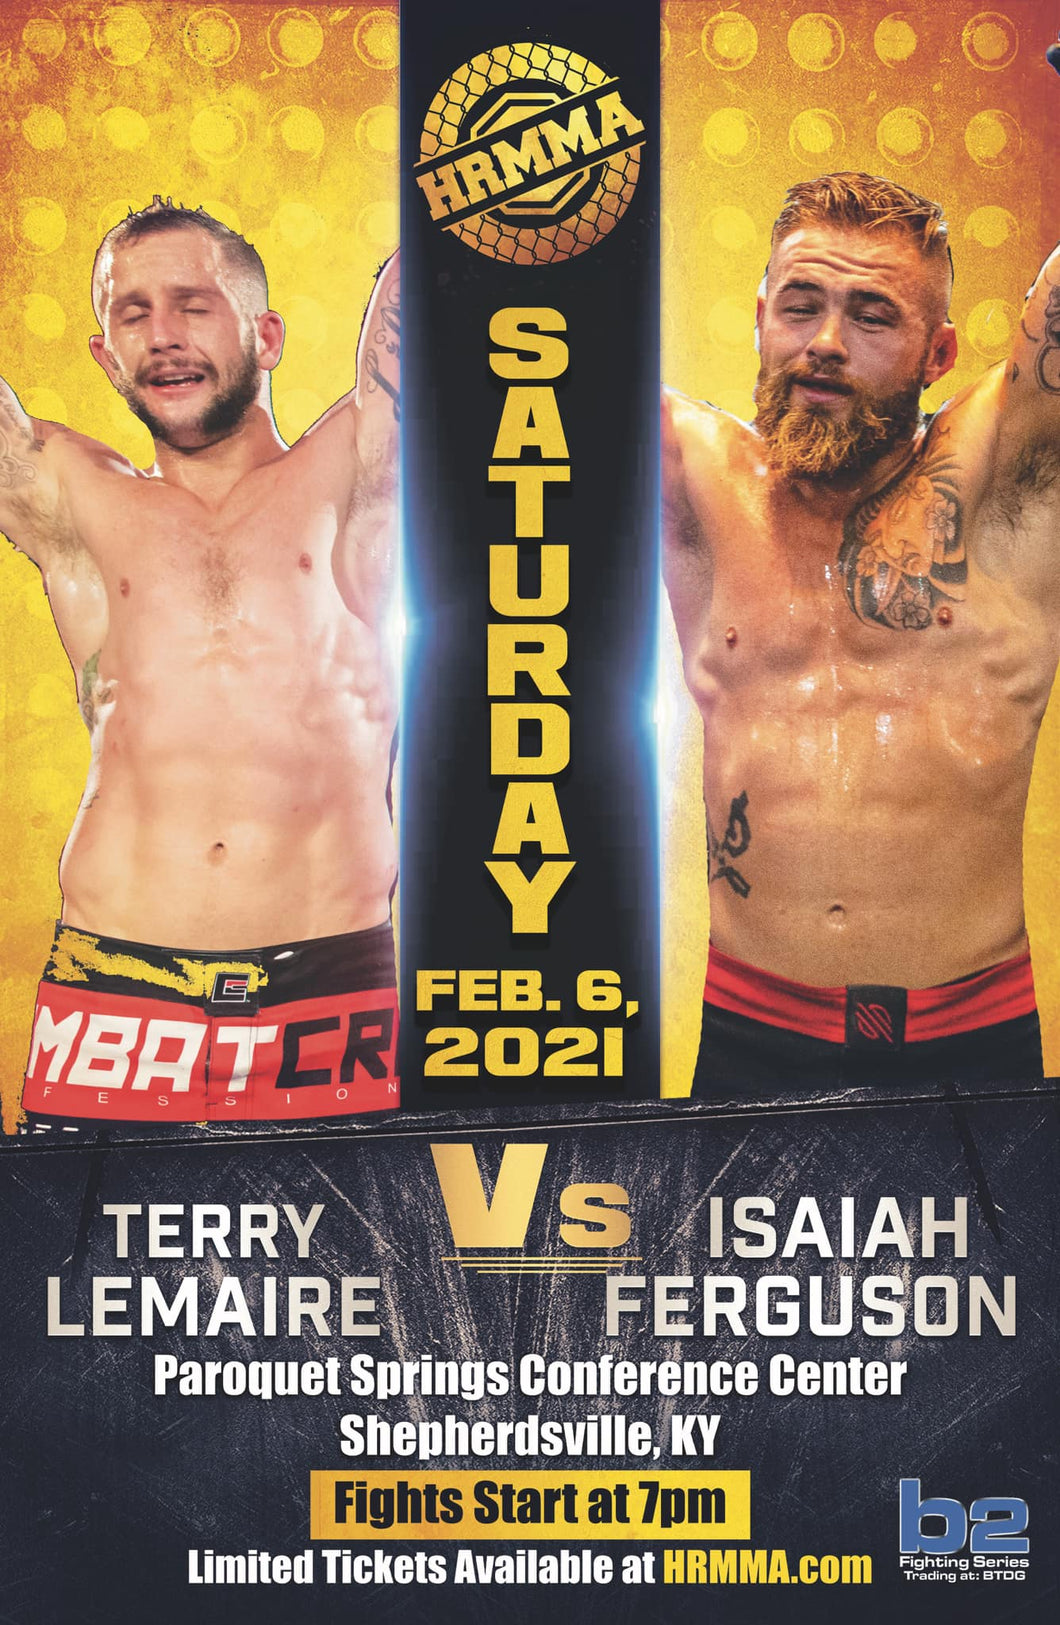 HRMMA 117 PPV - Shepherdsville, KY Feb 6th